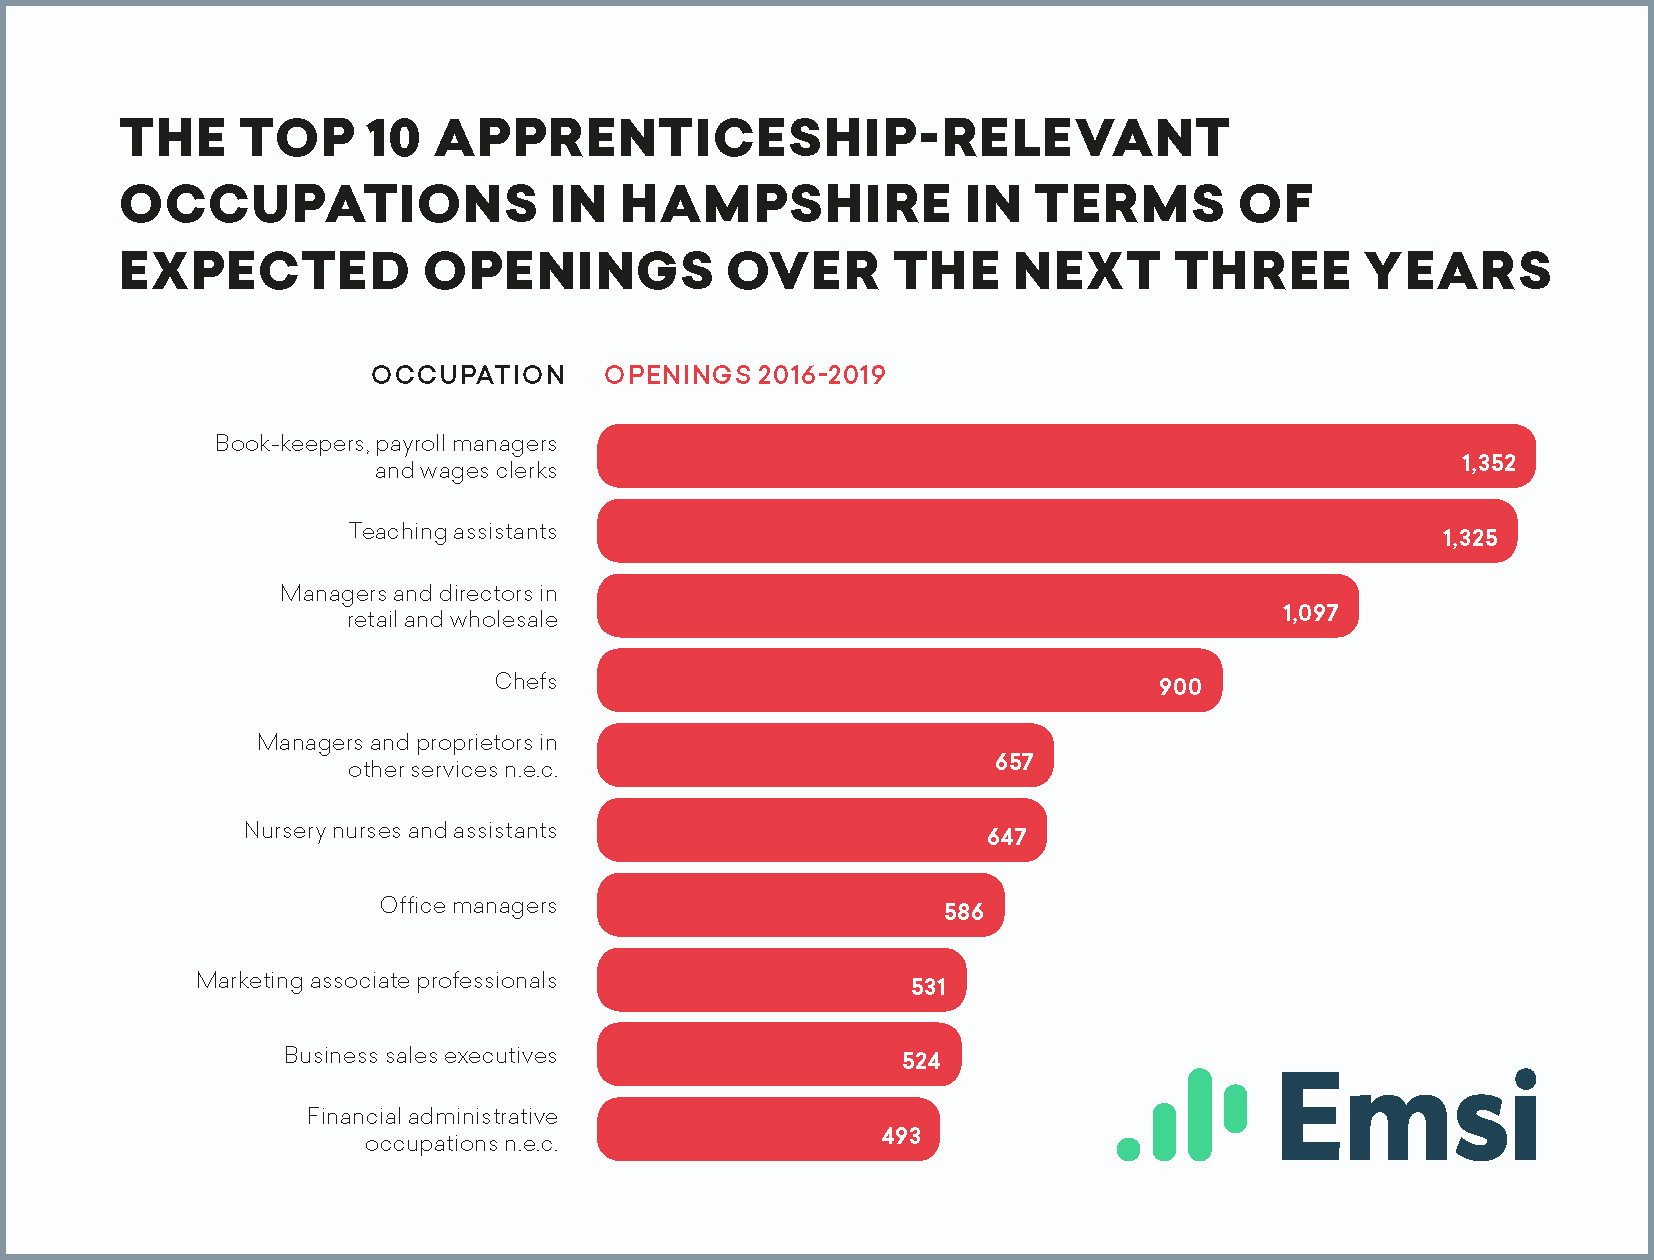 Top 10 apprenticeship-relevant occupations in Hampshire in terms of expected openings over the next three years